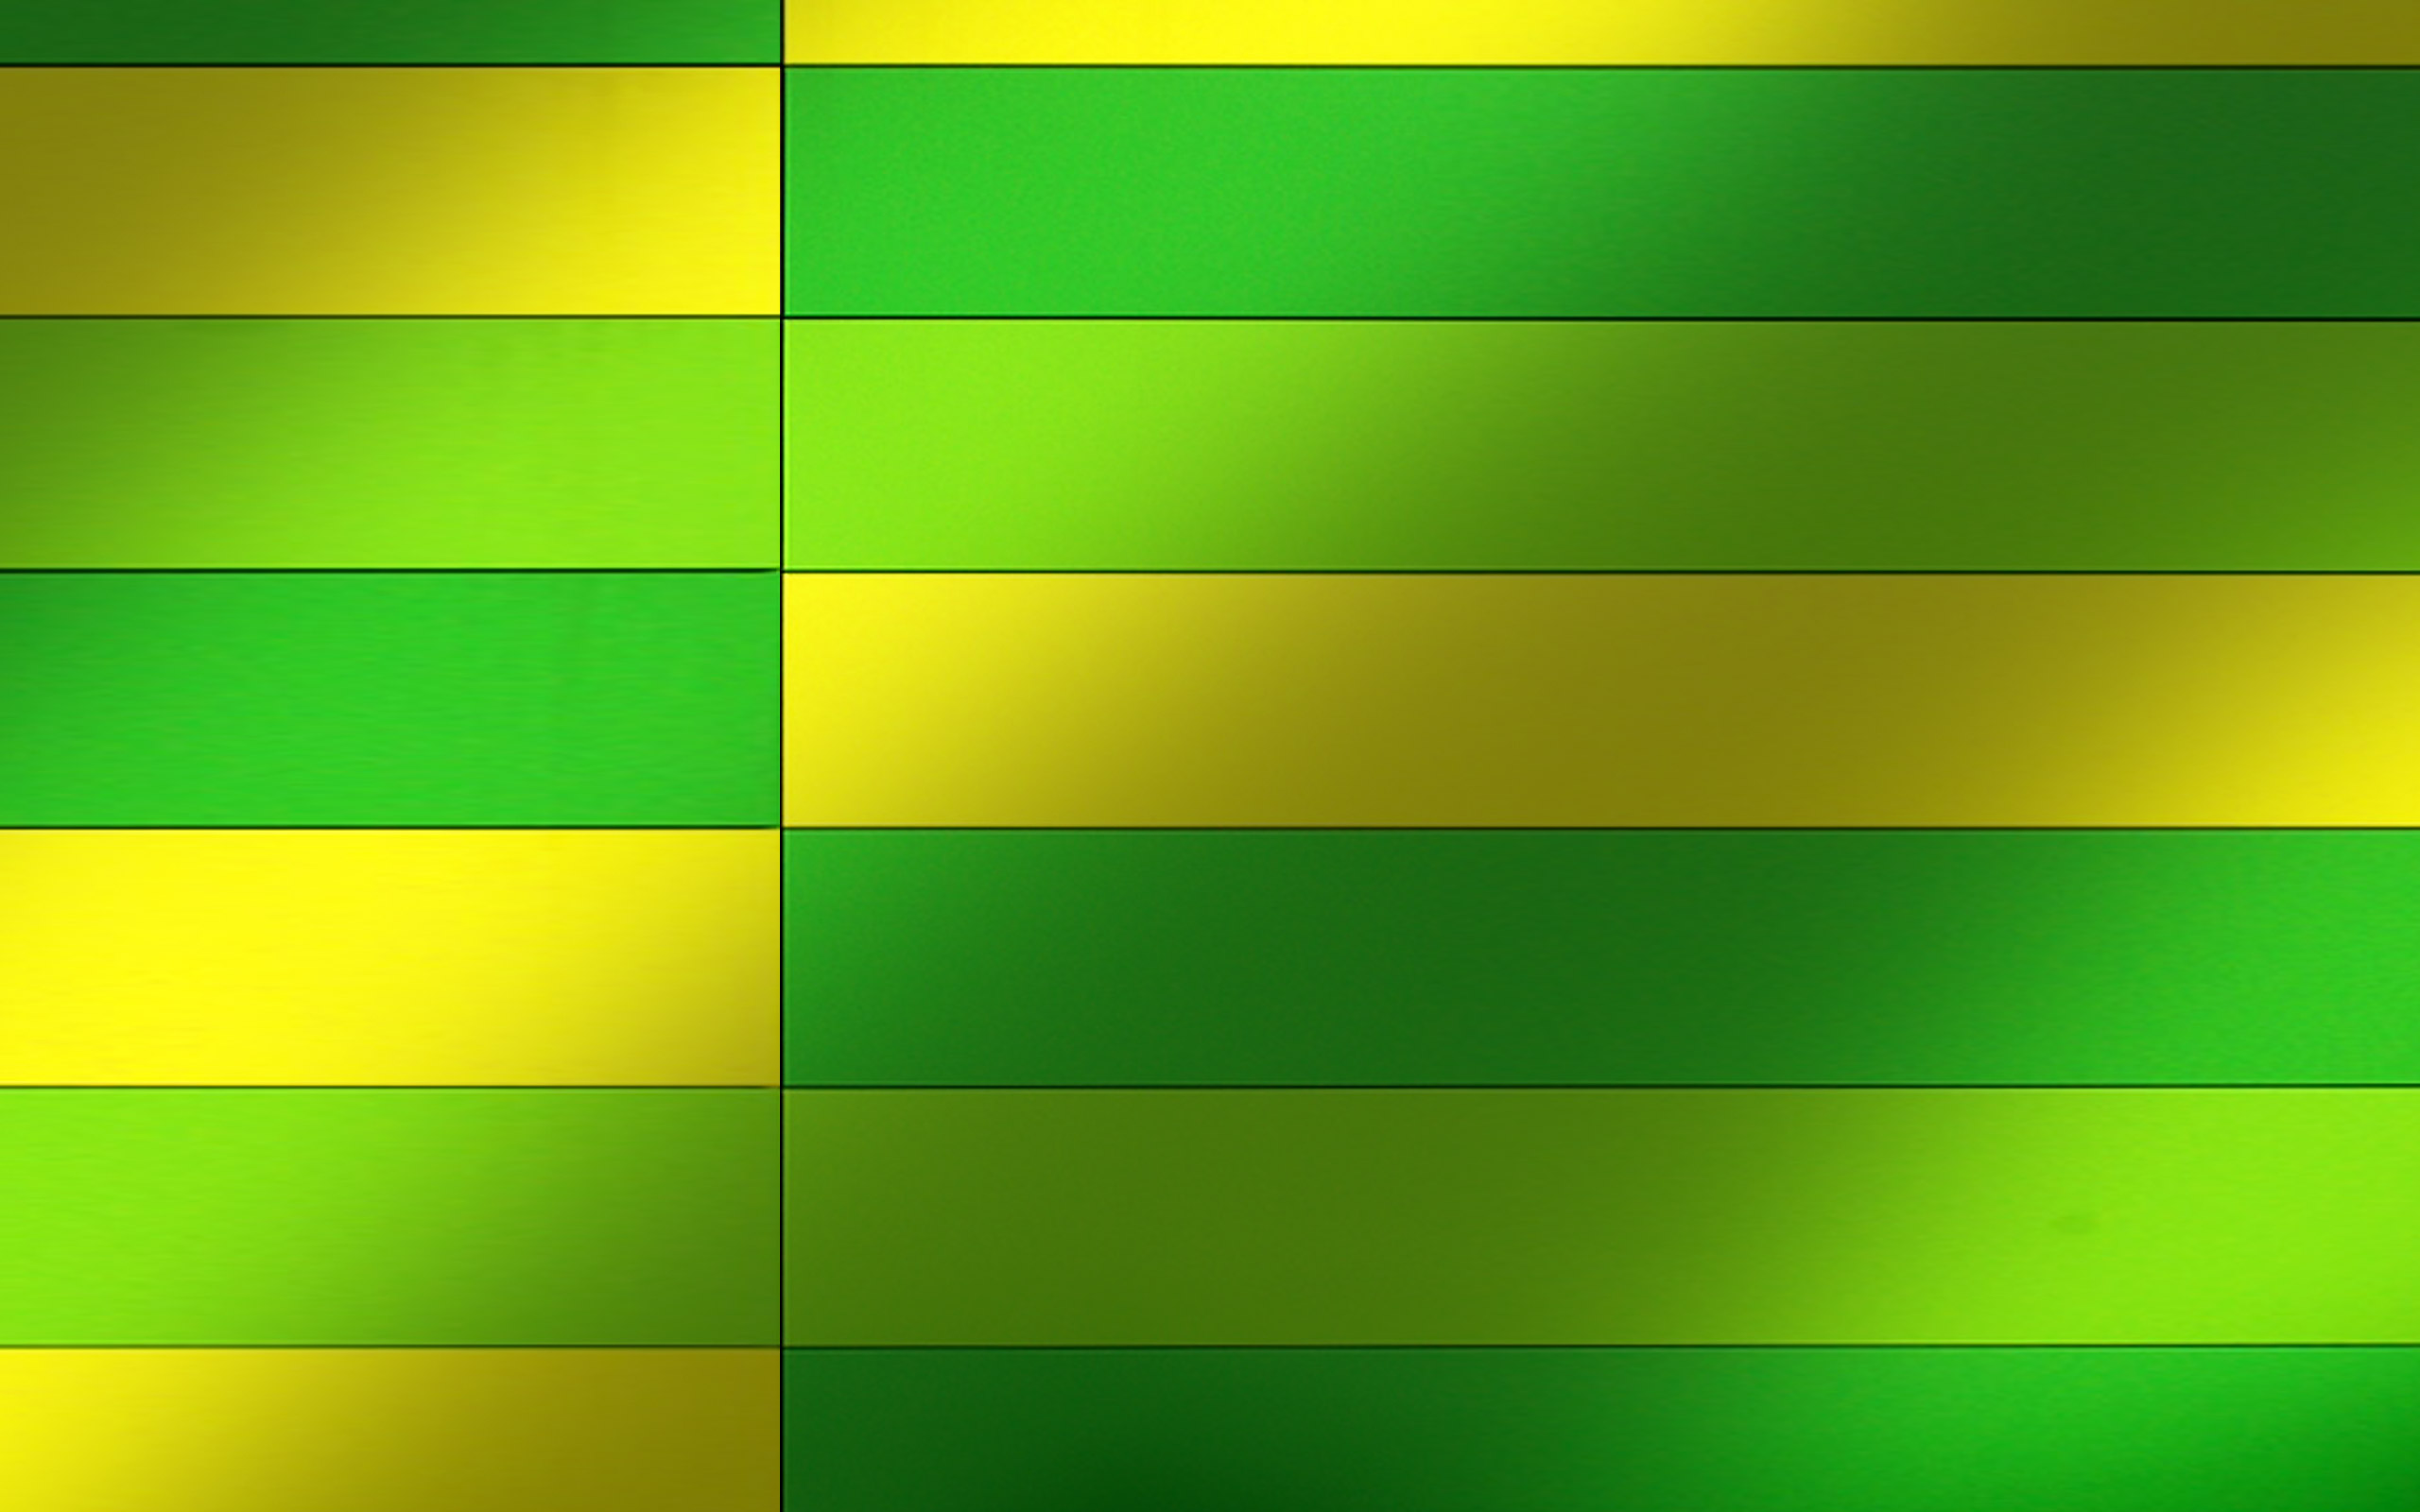 Green And Yellow Boxes | Free Desktop Wallpapers for Widescreen, HD ...